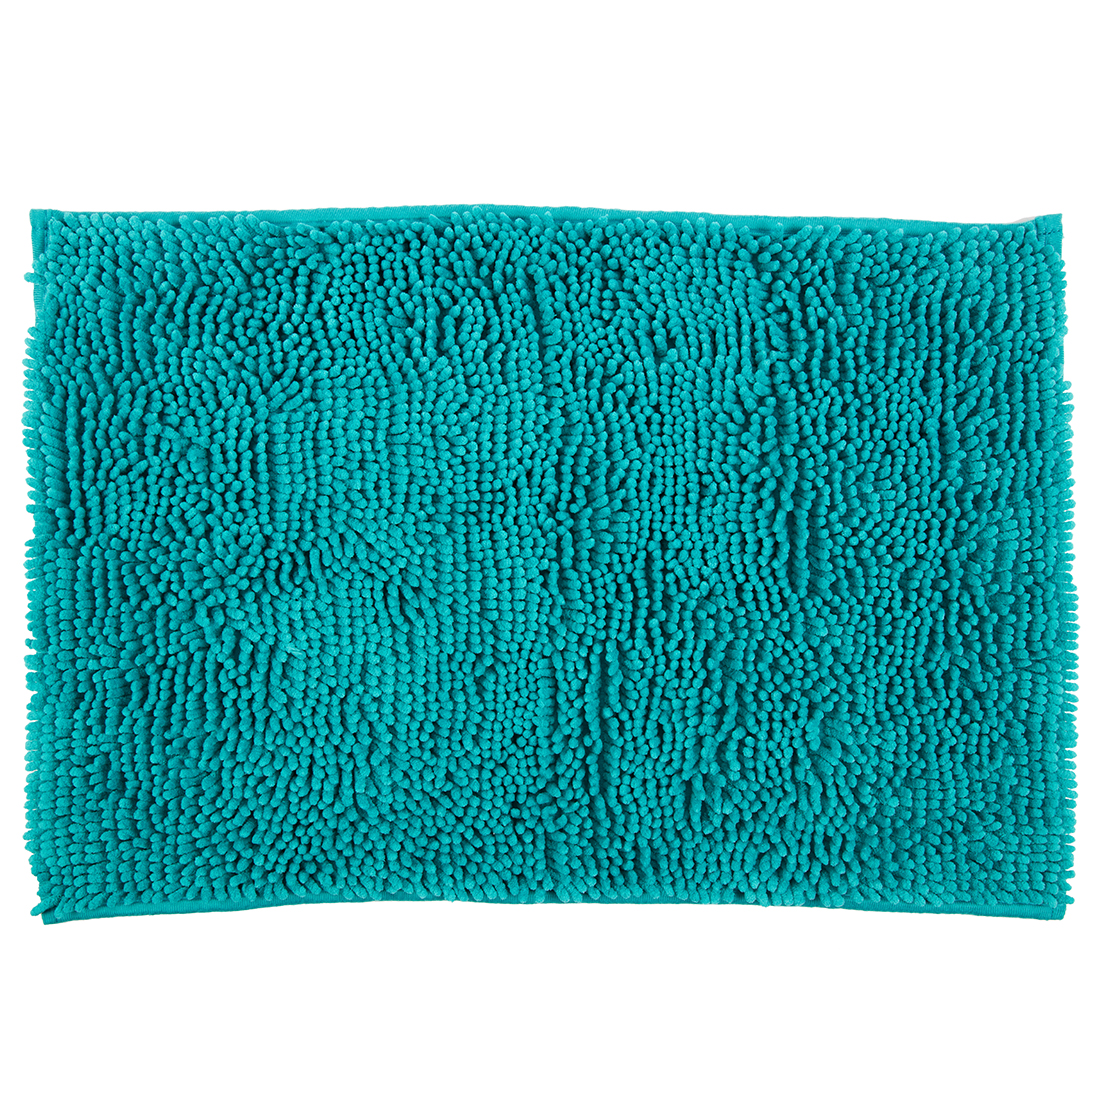 Bath Mat Nora Chenille Turquoise Chenille Bath Mats in Turquoise Colour by Living Essence